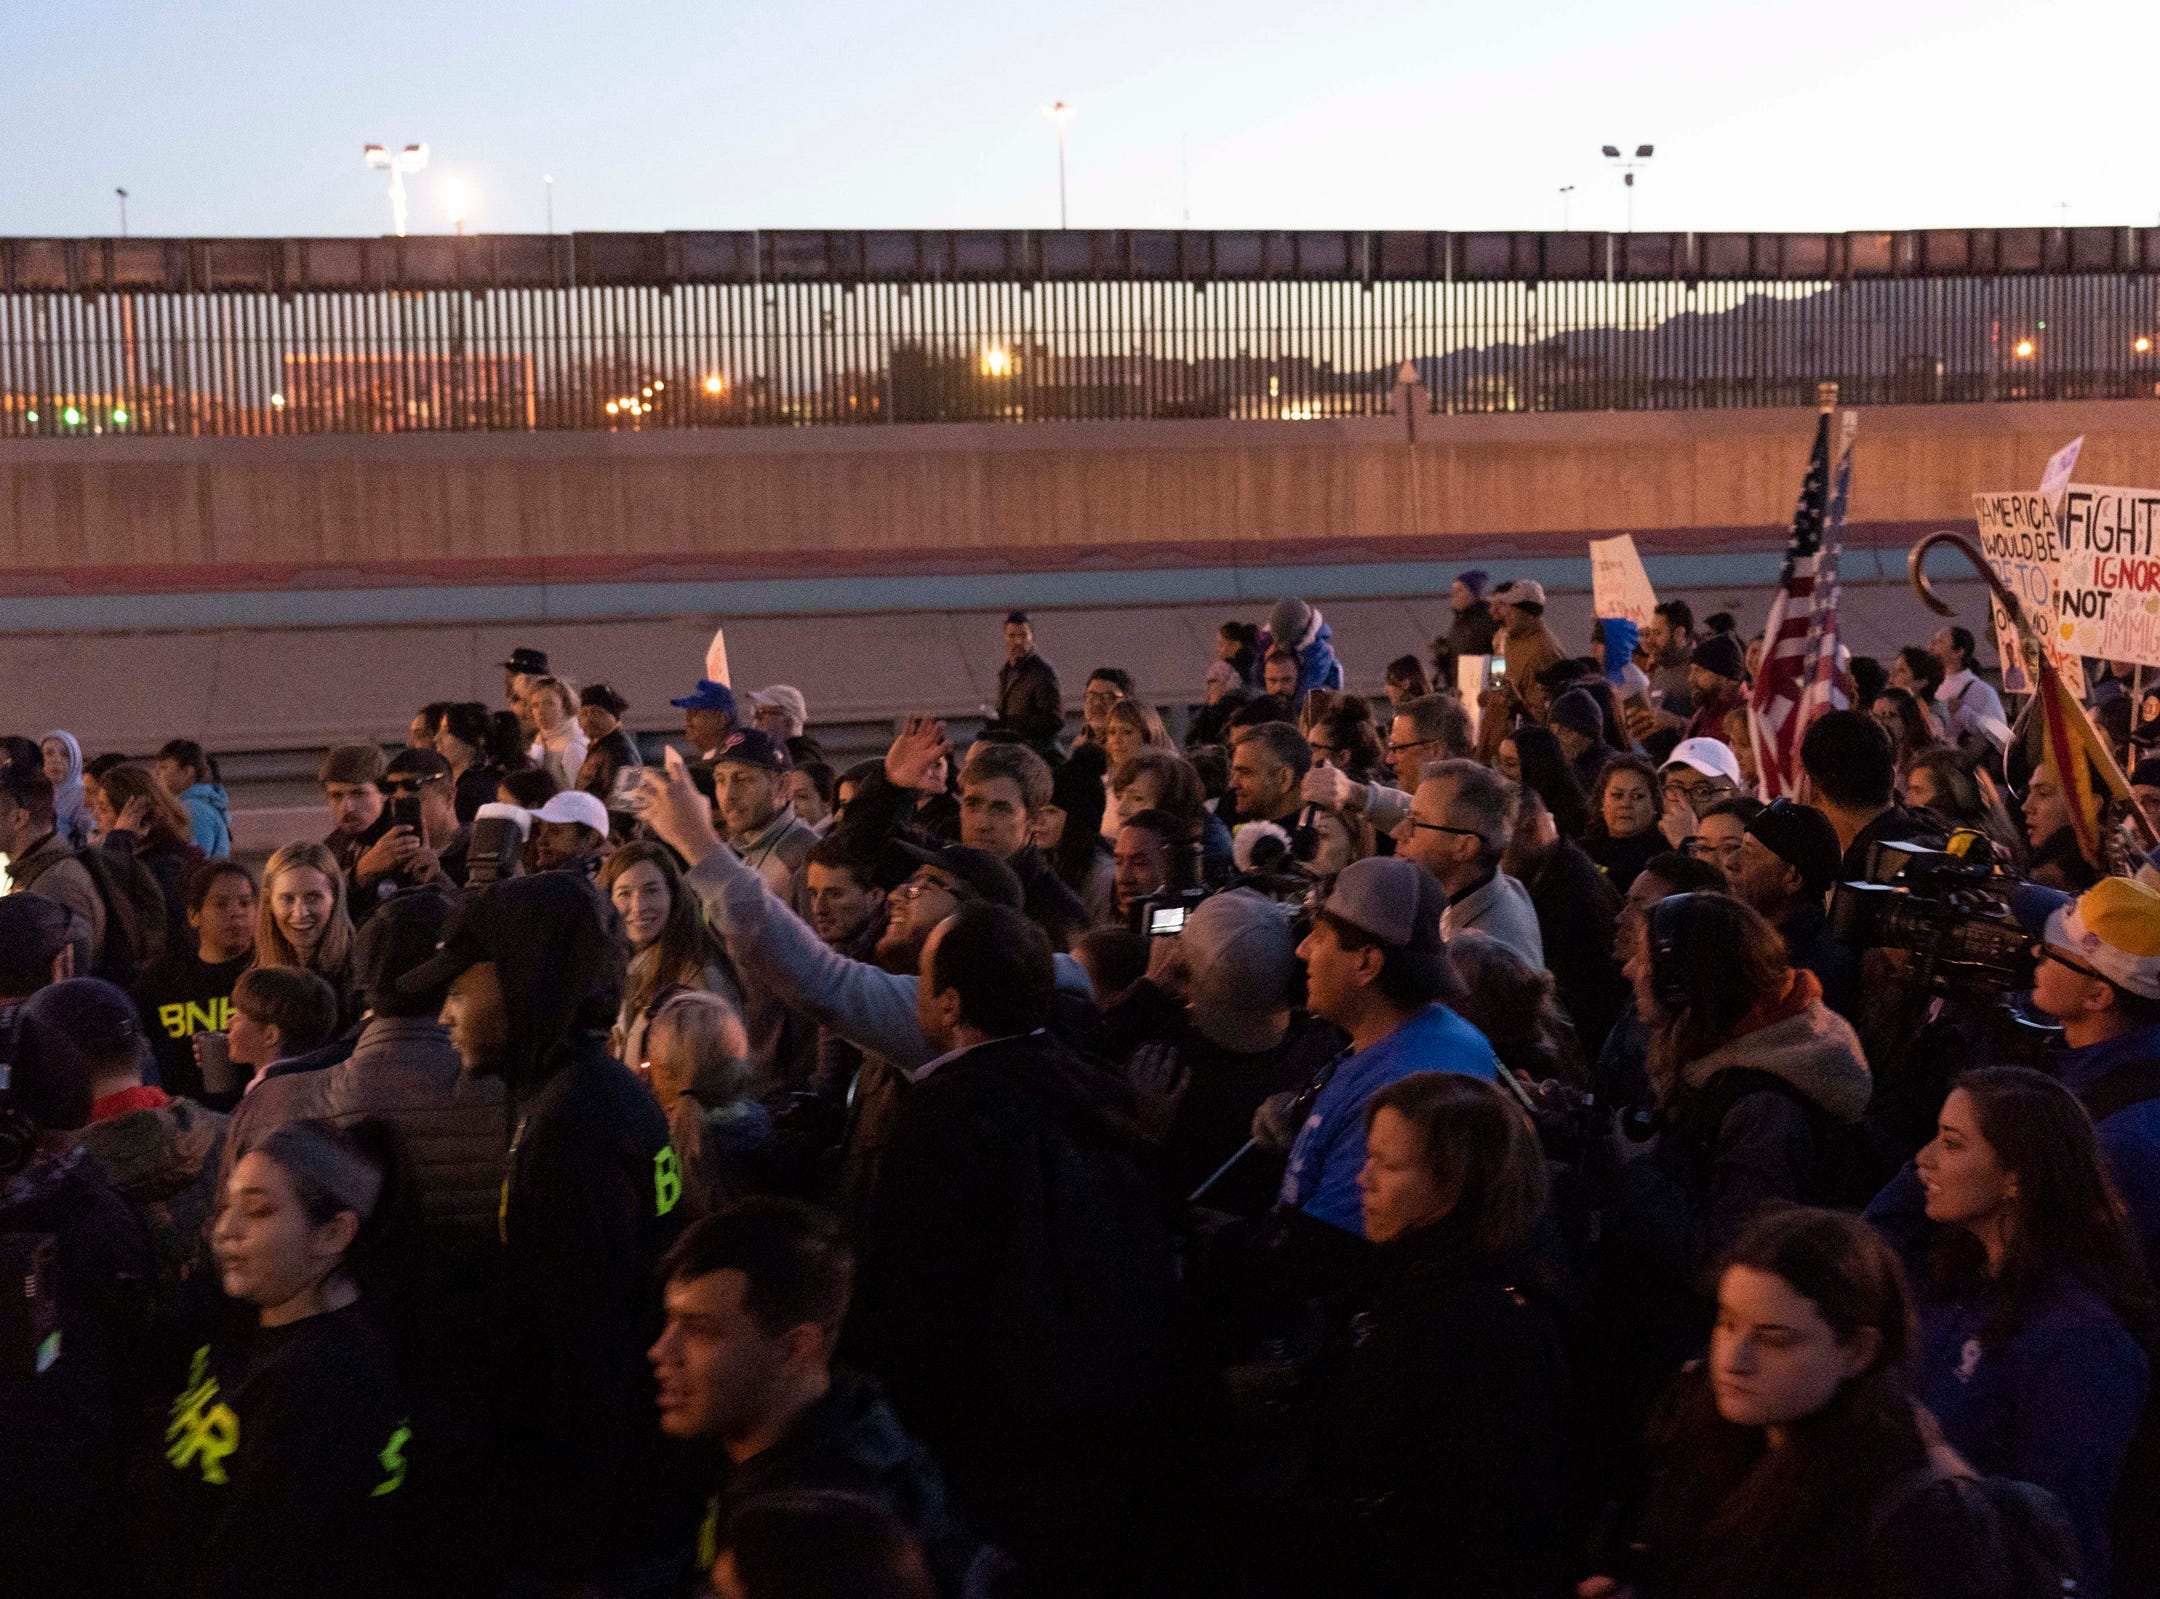 2/11/19 6:12:34 PM -- El Paso, TX, U.S.A  -- Hundreds joined the March for Truth along with Border Network for Human Rights, Women's March, to protest against President Trump campaign rally near El Paso County Coliseum on Feb. 11, 2019.